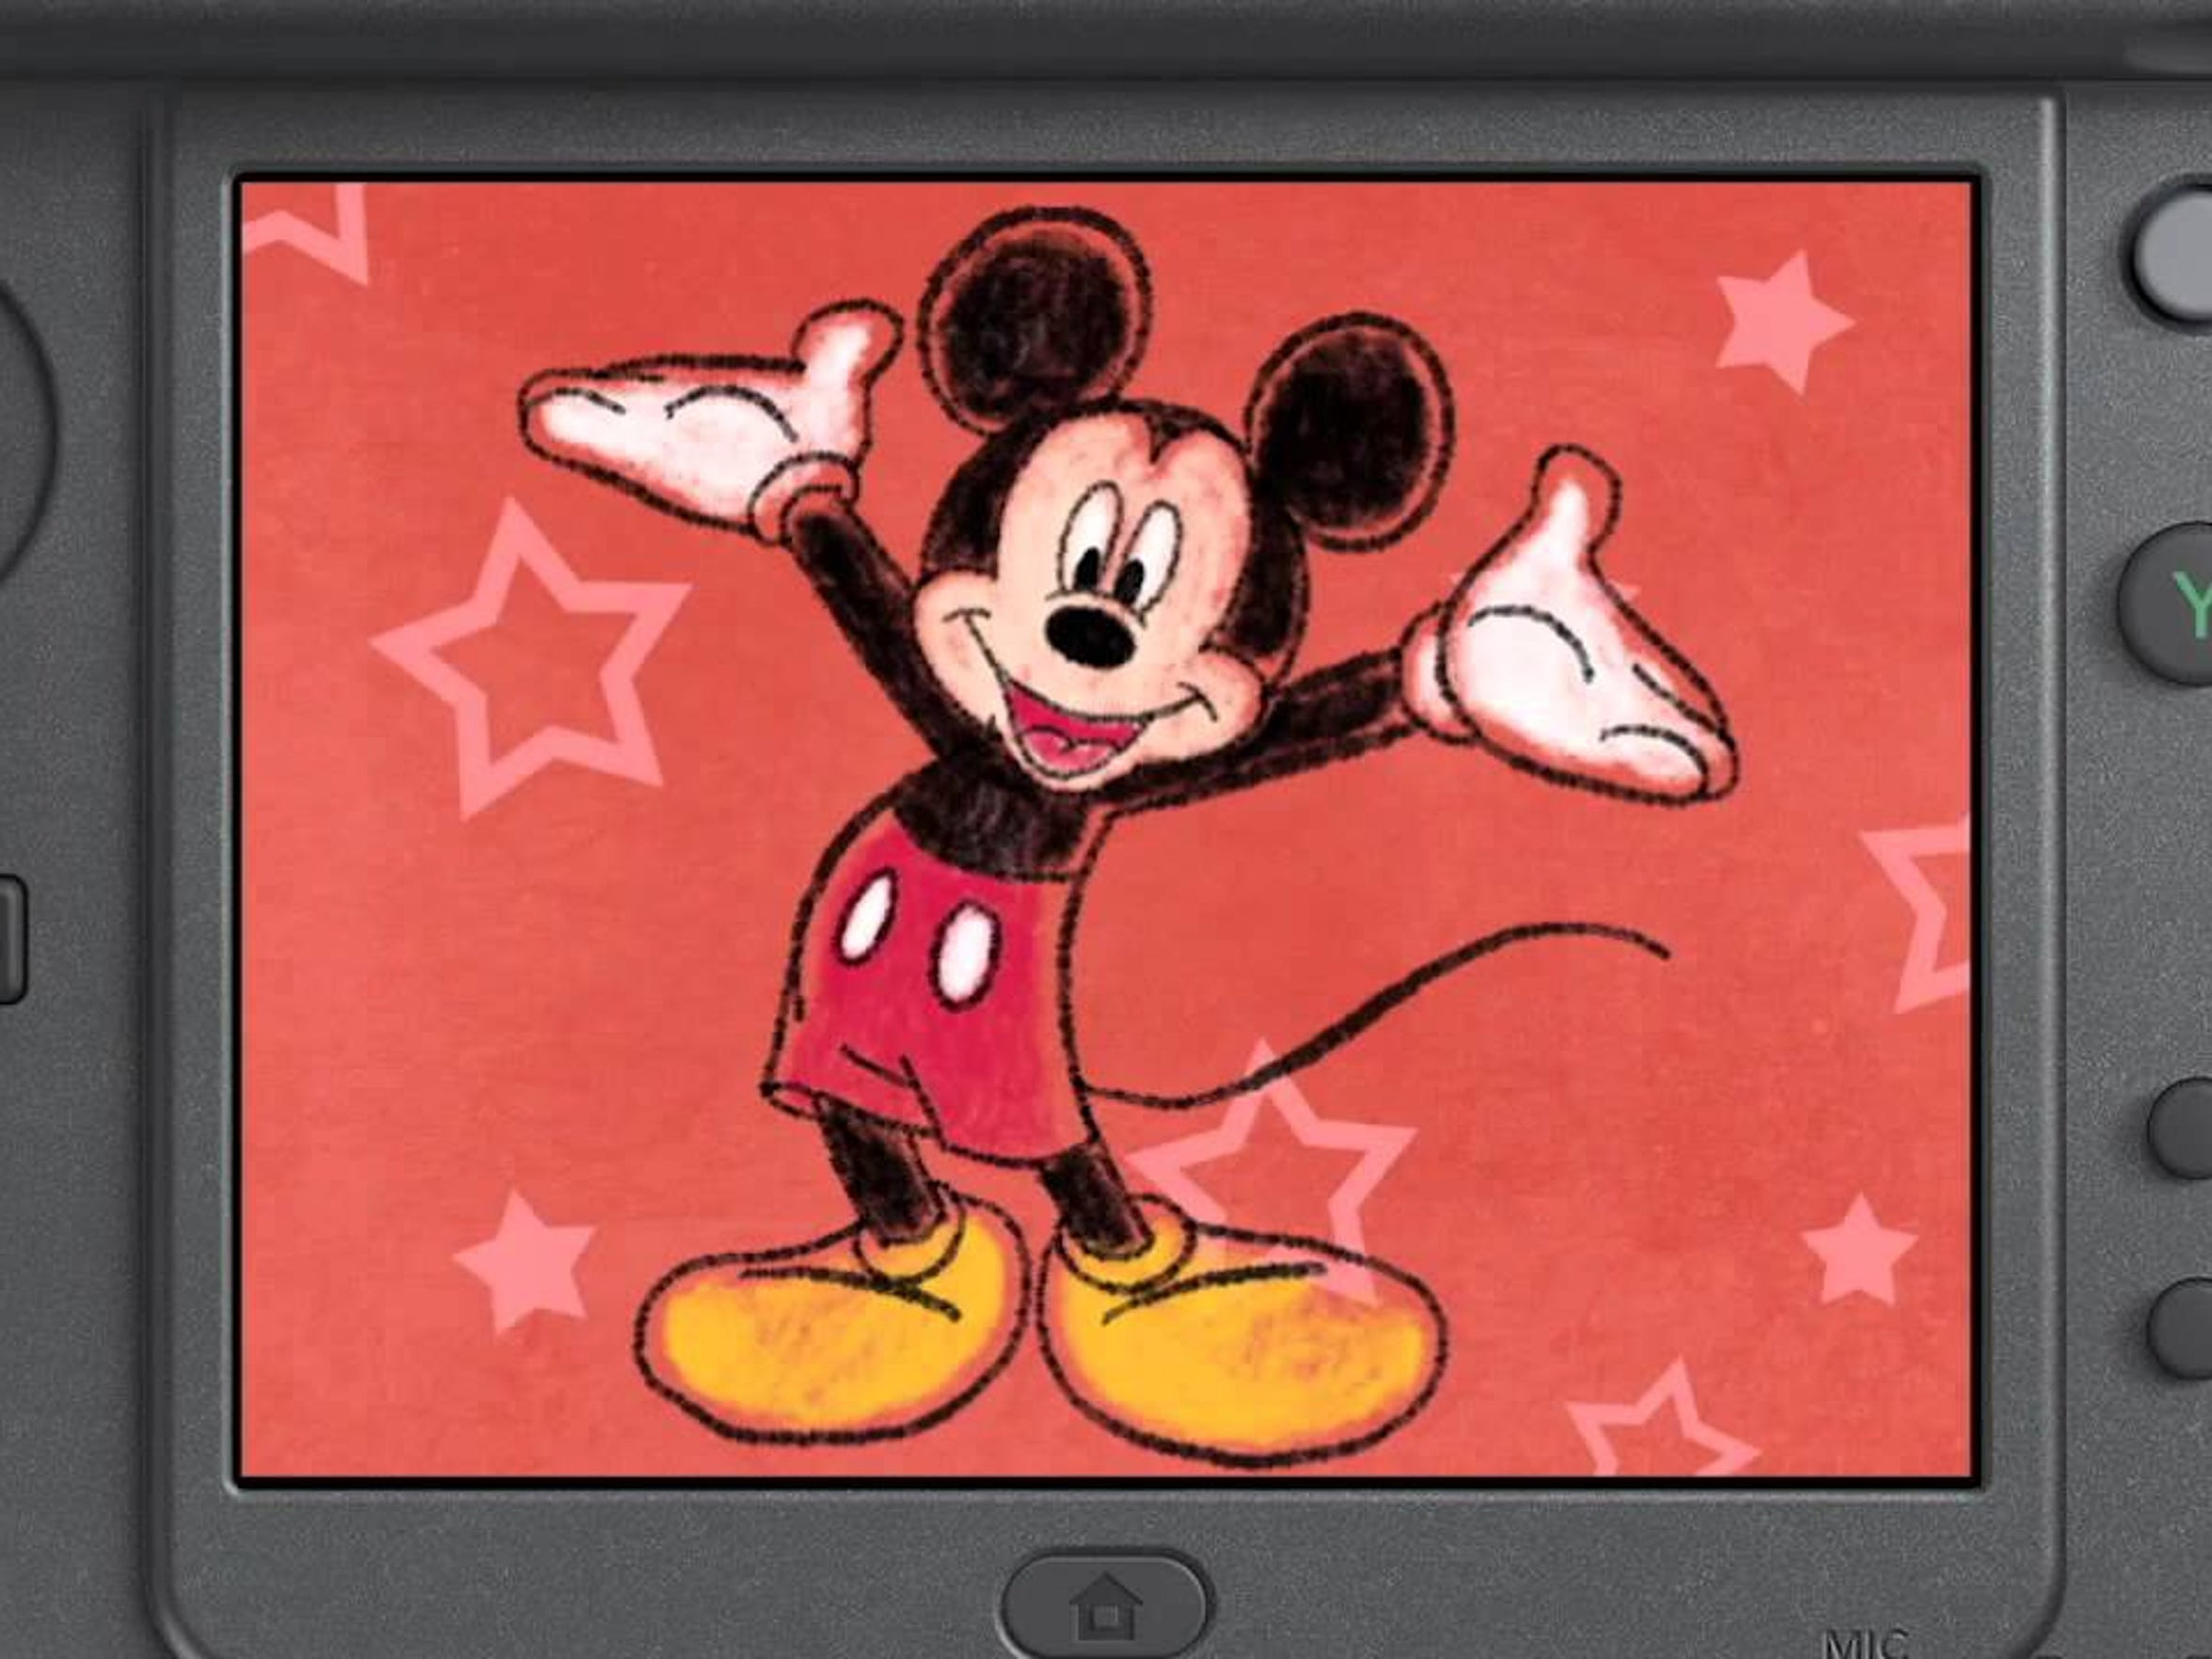 Draw characters such as Mickey Mouse in Disney Art Academy.